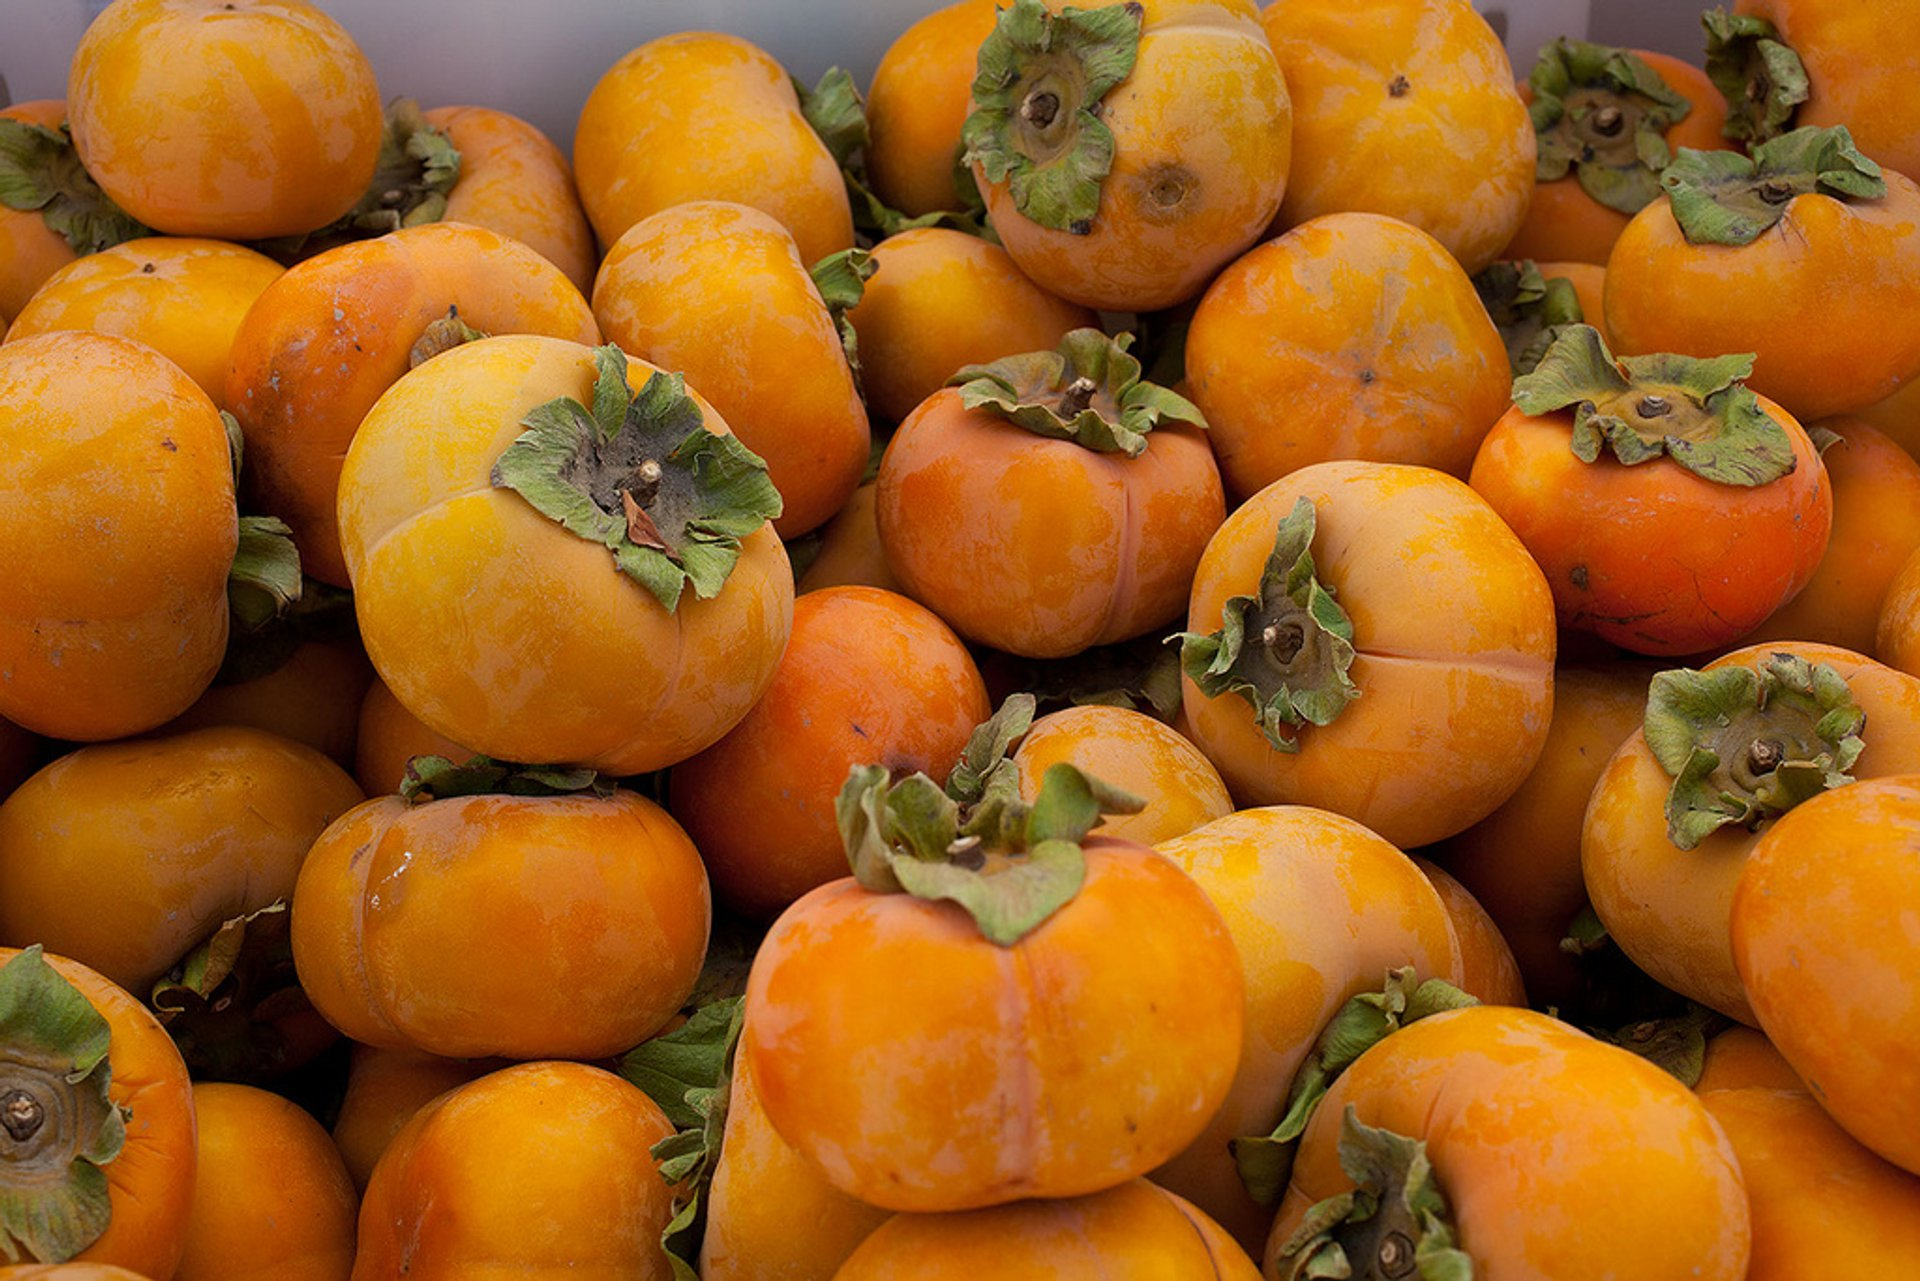 Fuyu Persimmons in San Francisco 2020 - Best Time